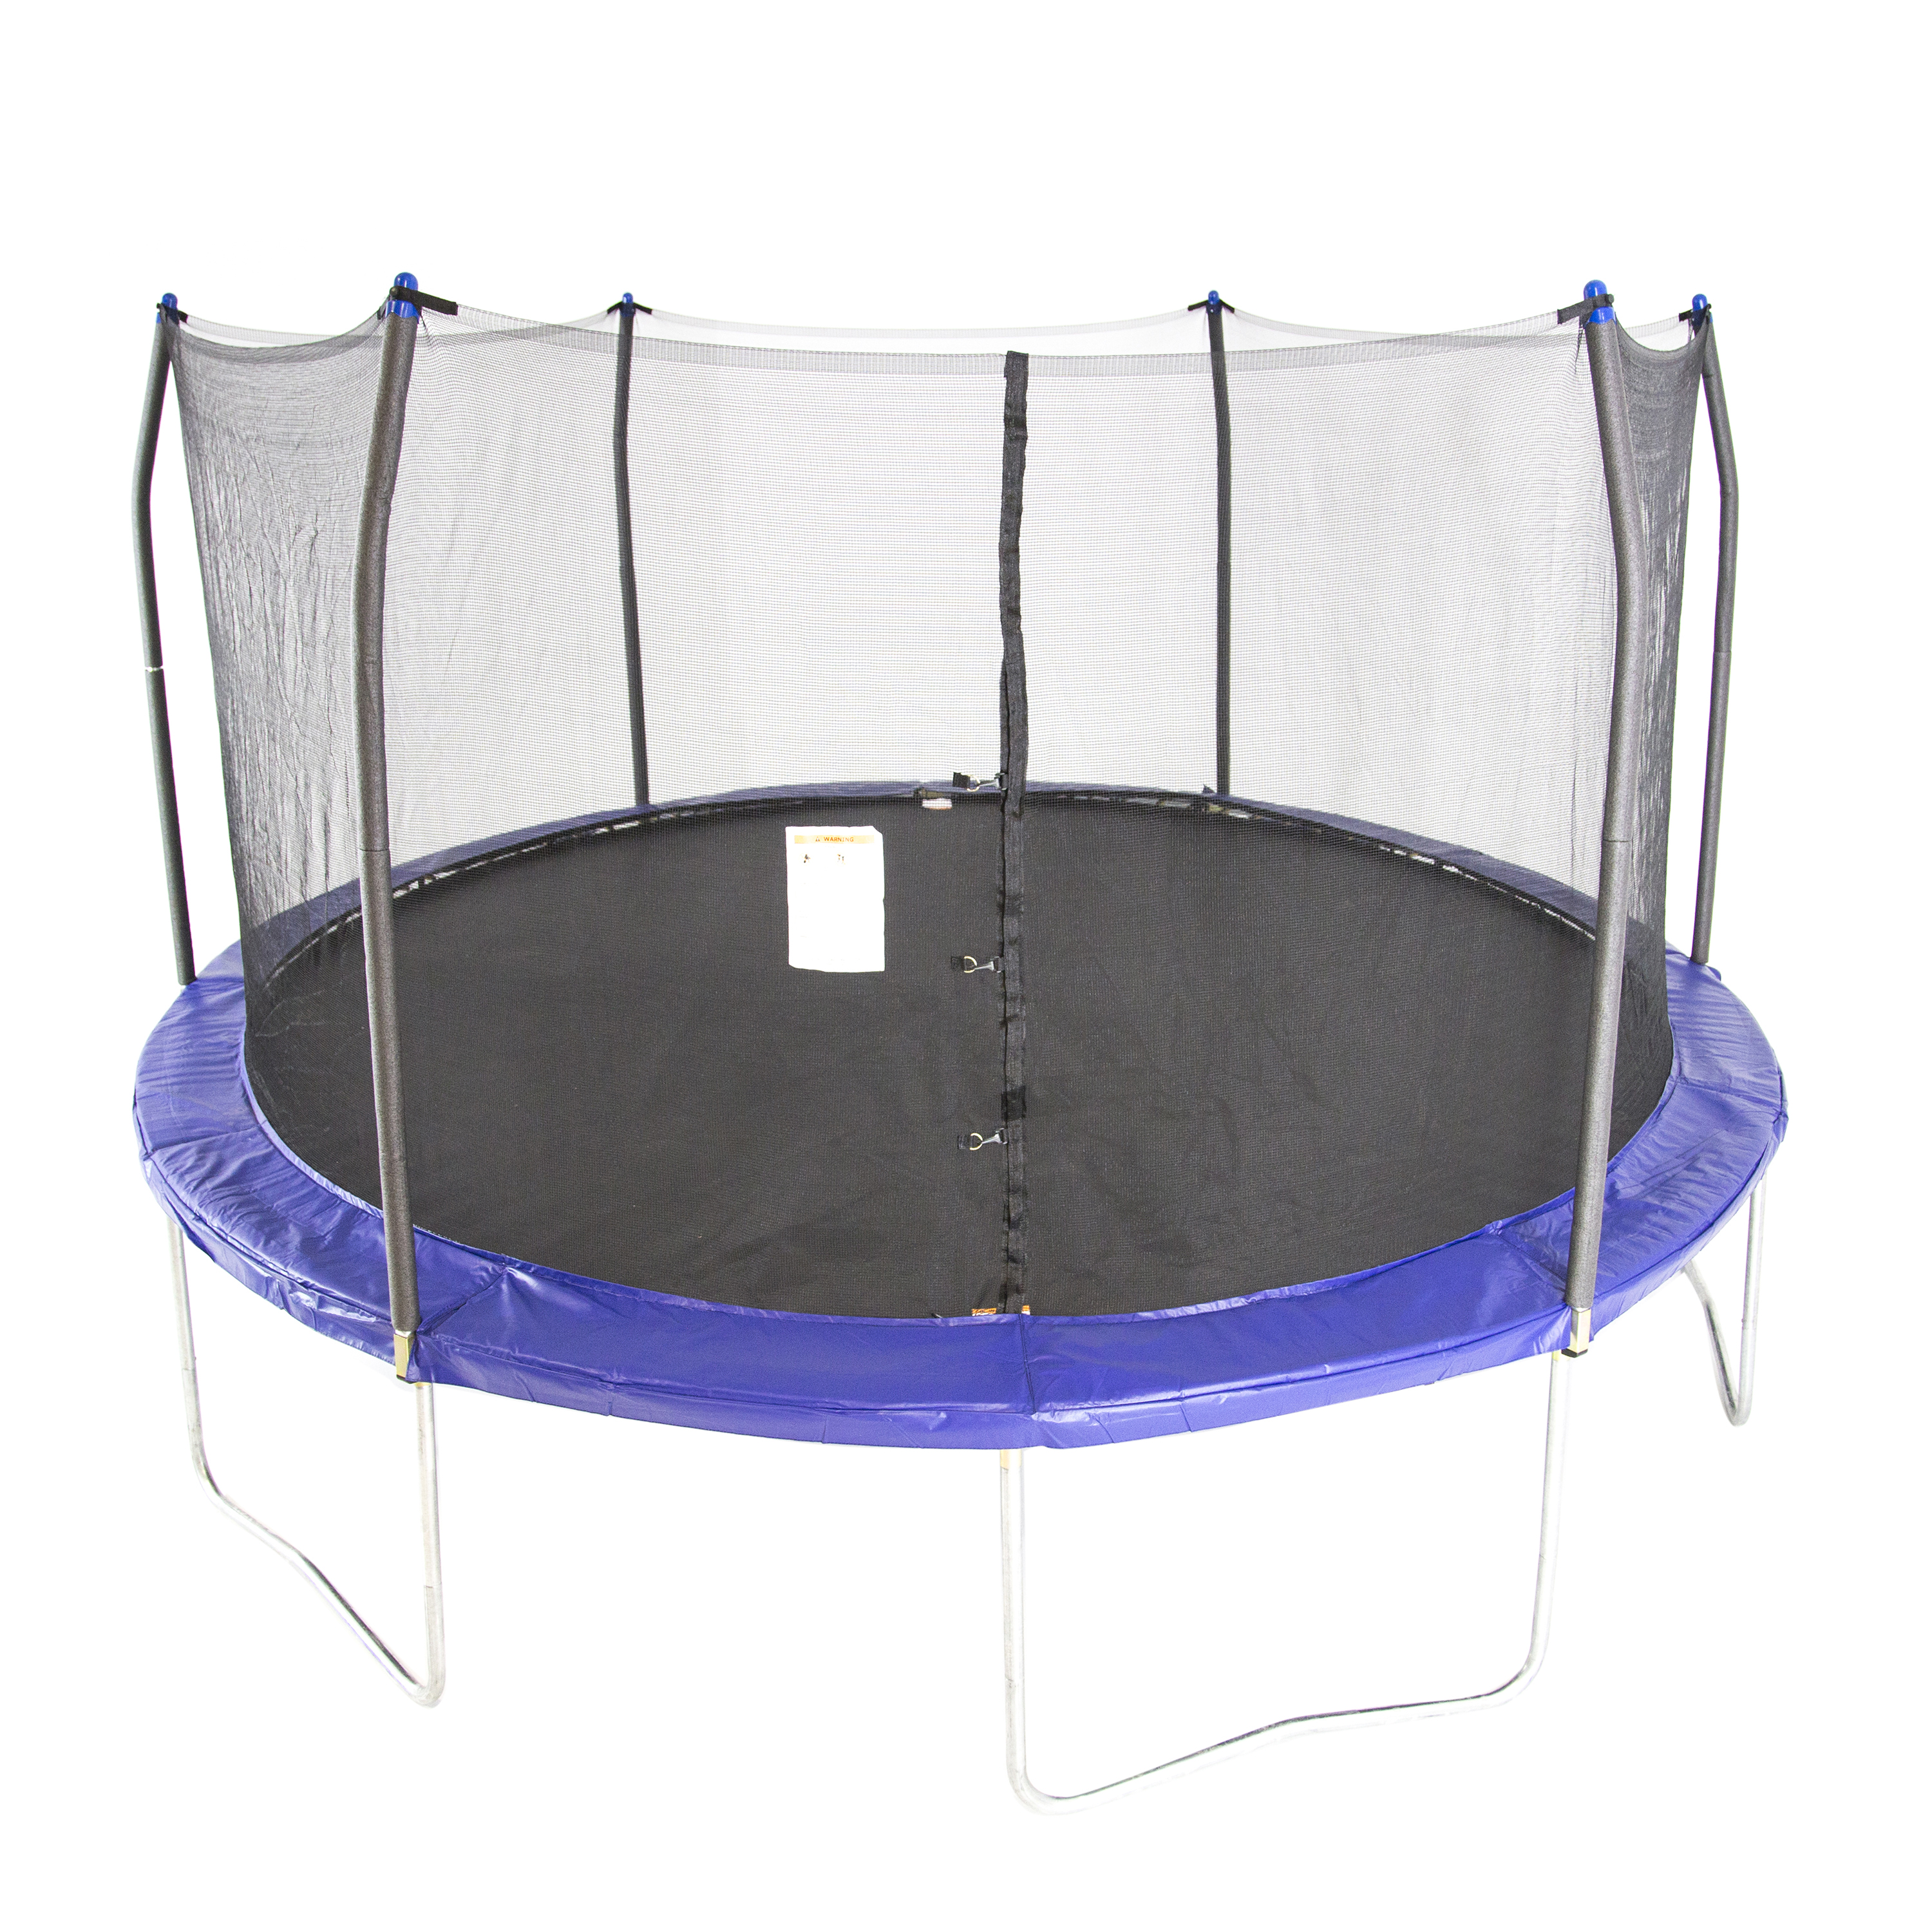 Skywalker Trampolines 15-Foot Trampoline, with Enclosure, Blue